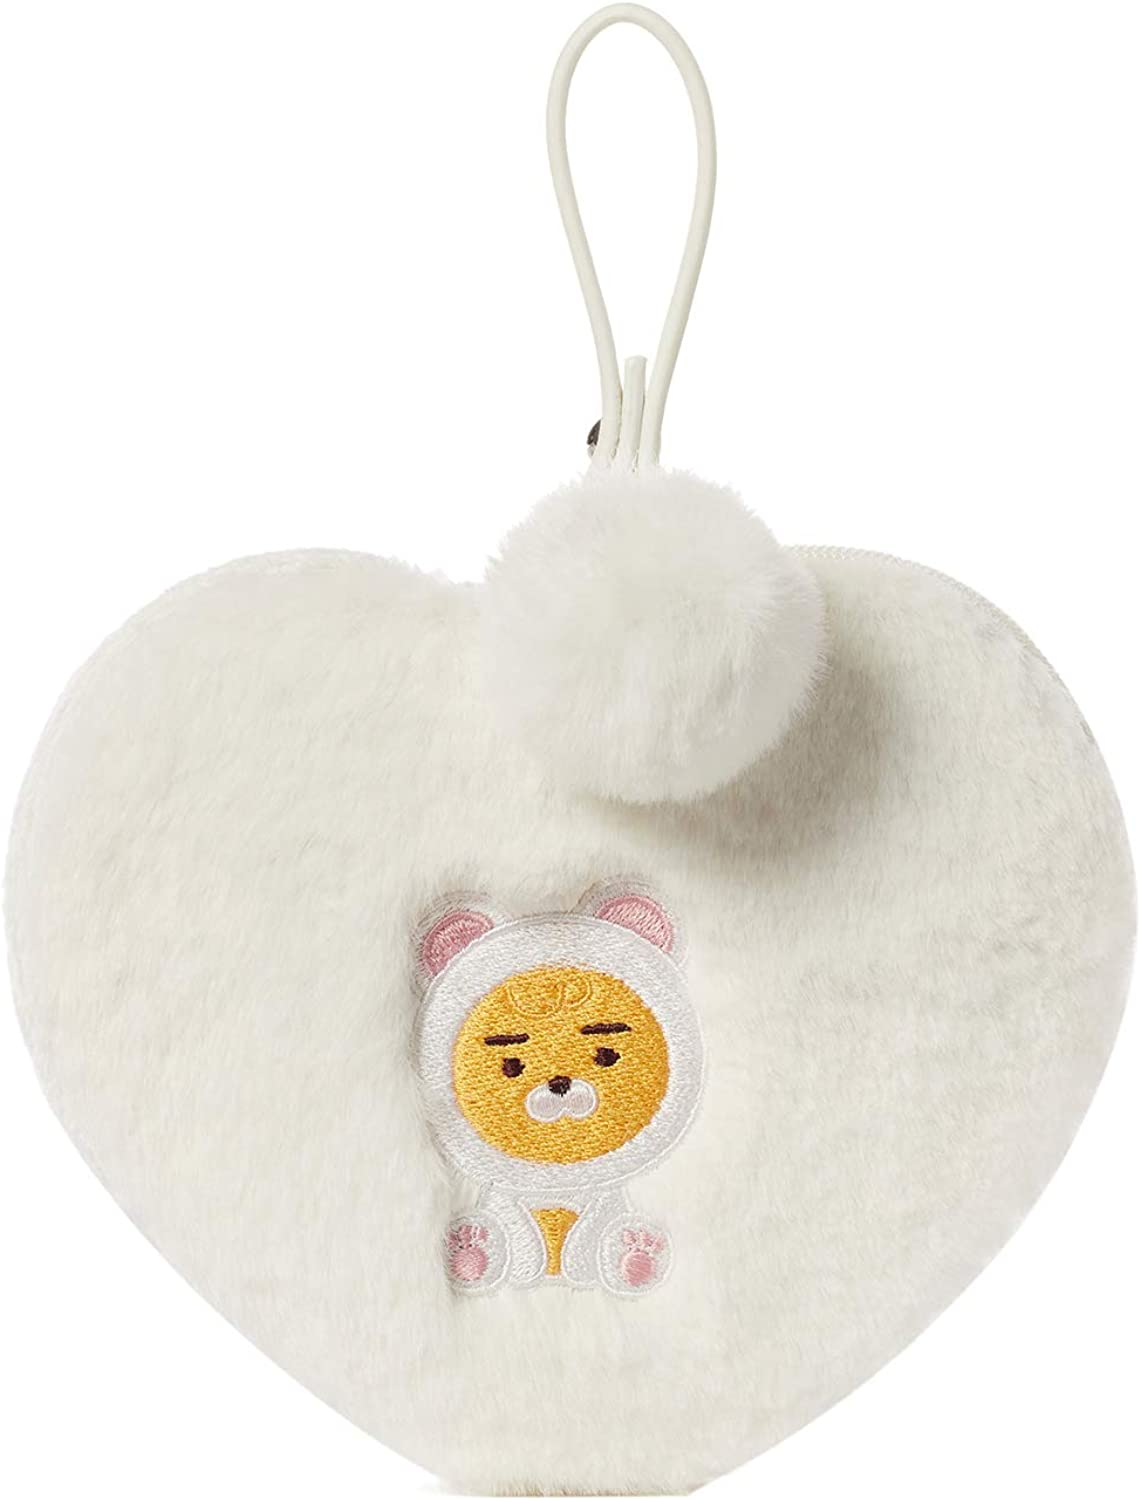 KAKAO FRIENDS Official- PomPom Heart Shaped Plush Pouch Case